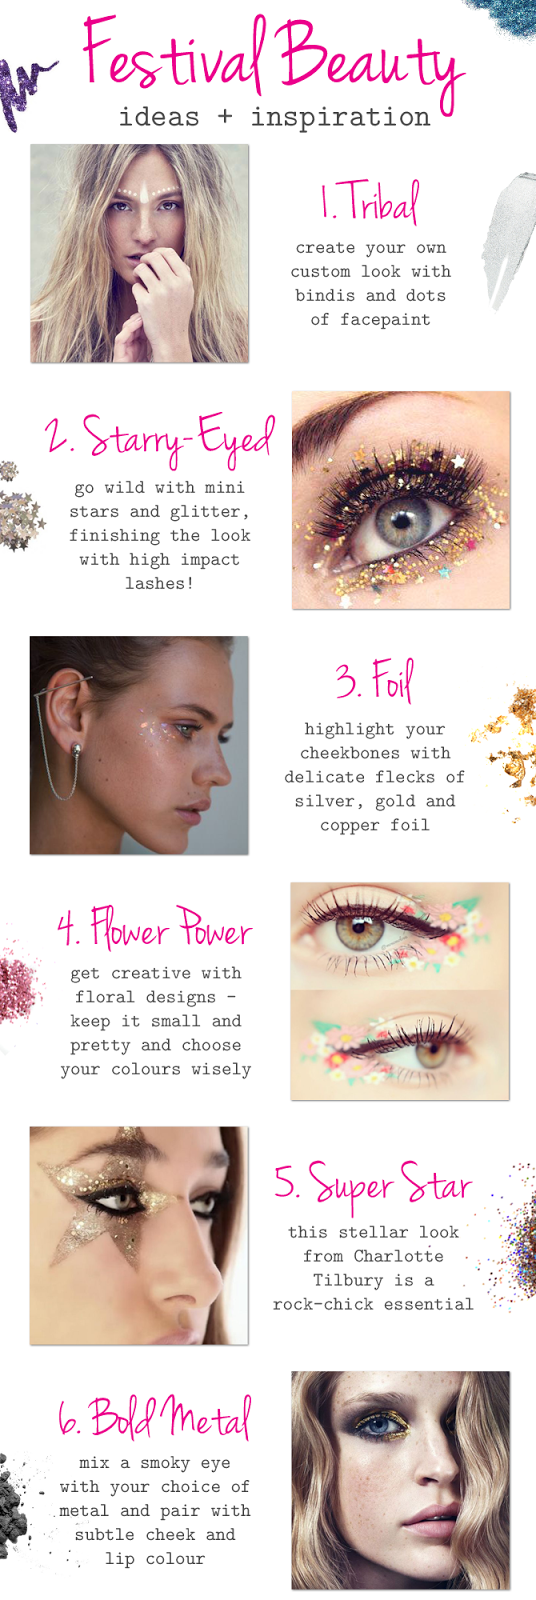 Festival Beauty: Ideas + Inspiration